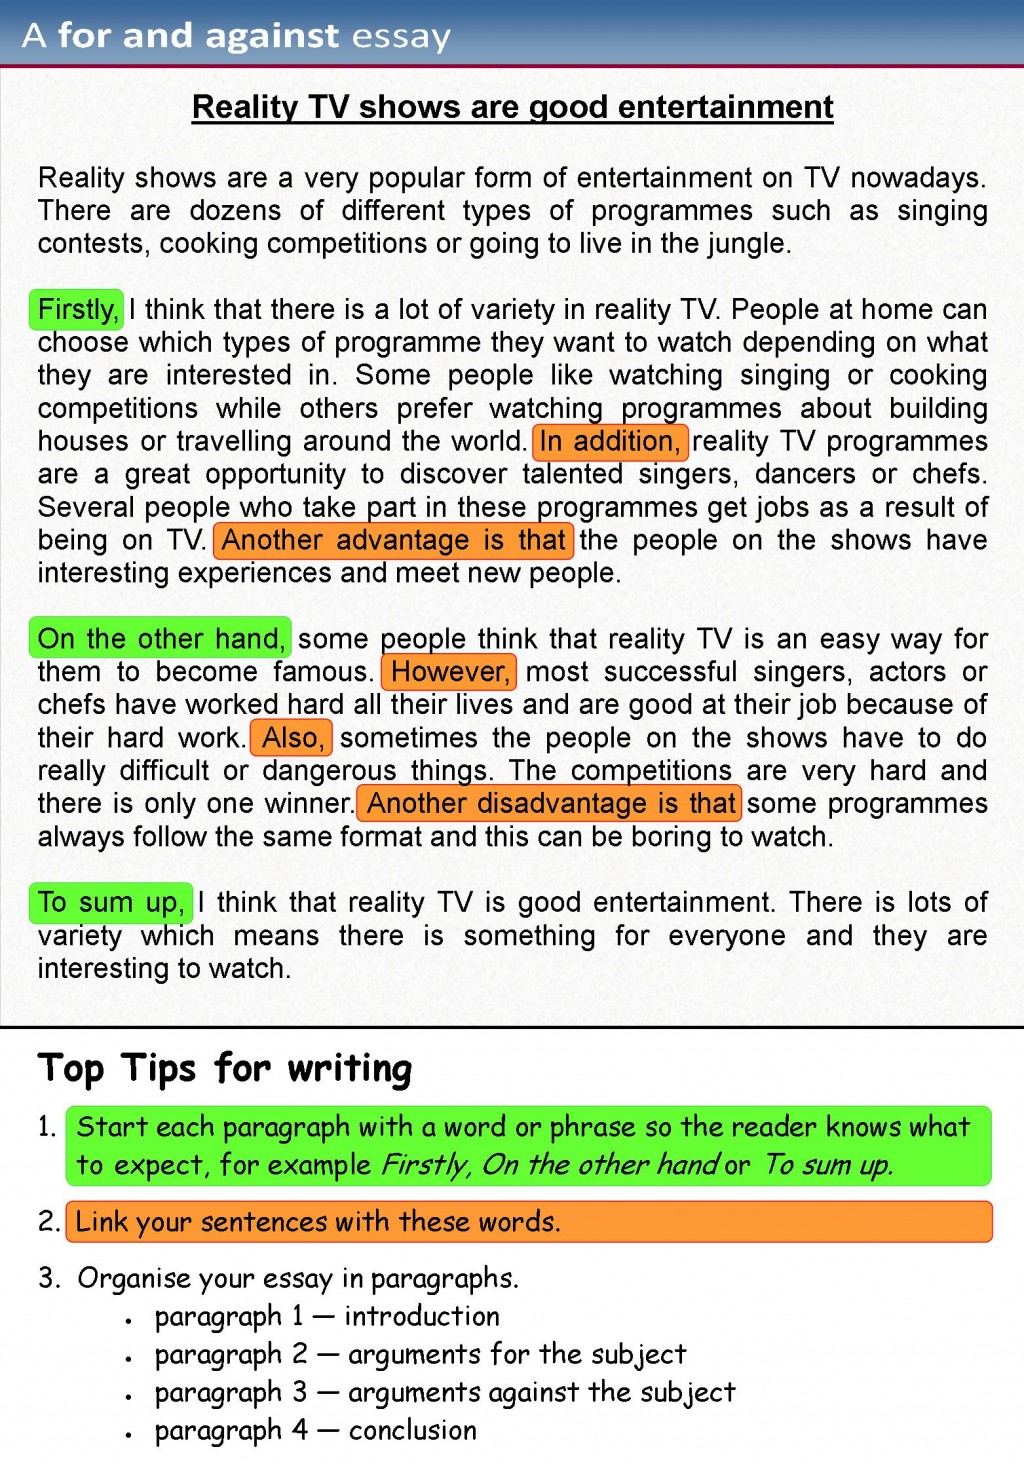 019 Essay Example How To Write And For Against 1 Unique An Paper In Apa Format Conclusion Mla Large